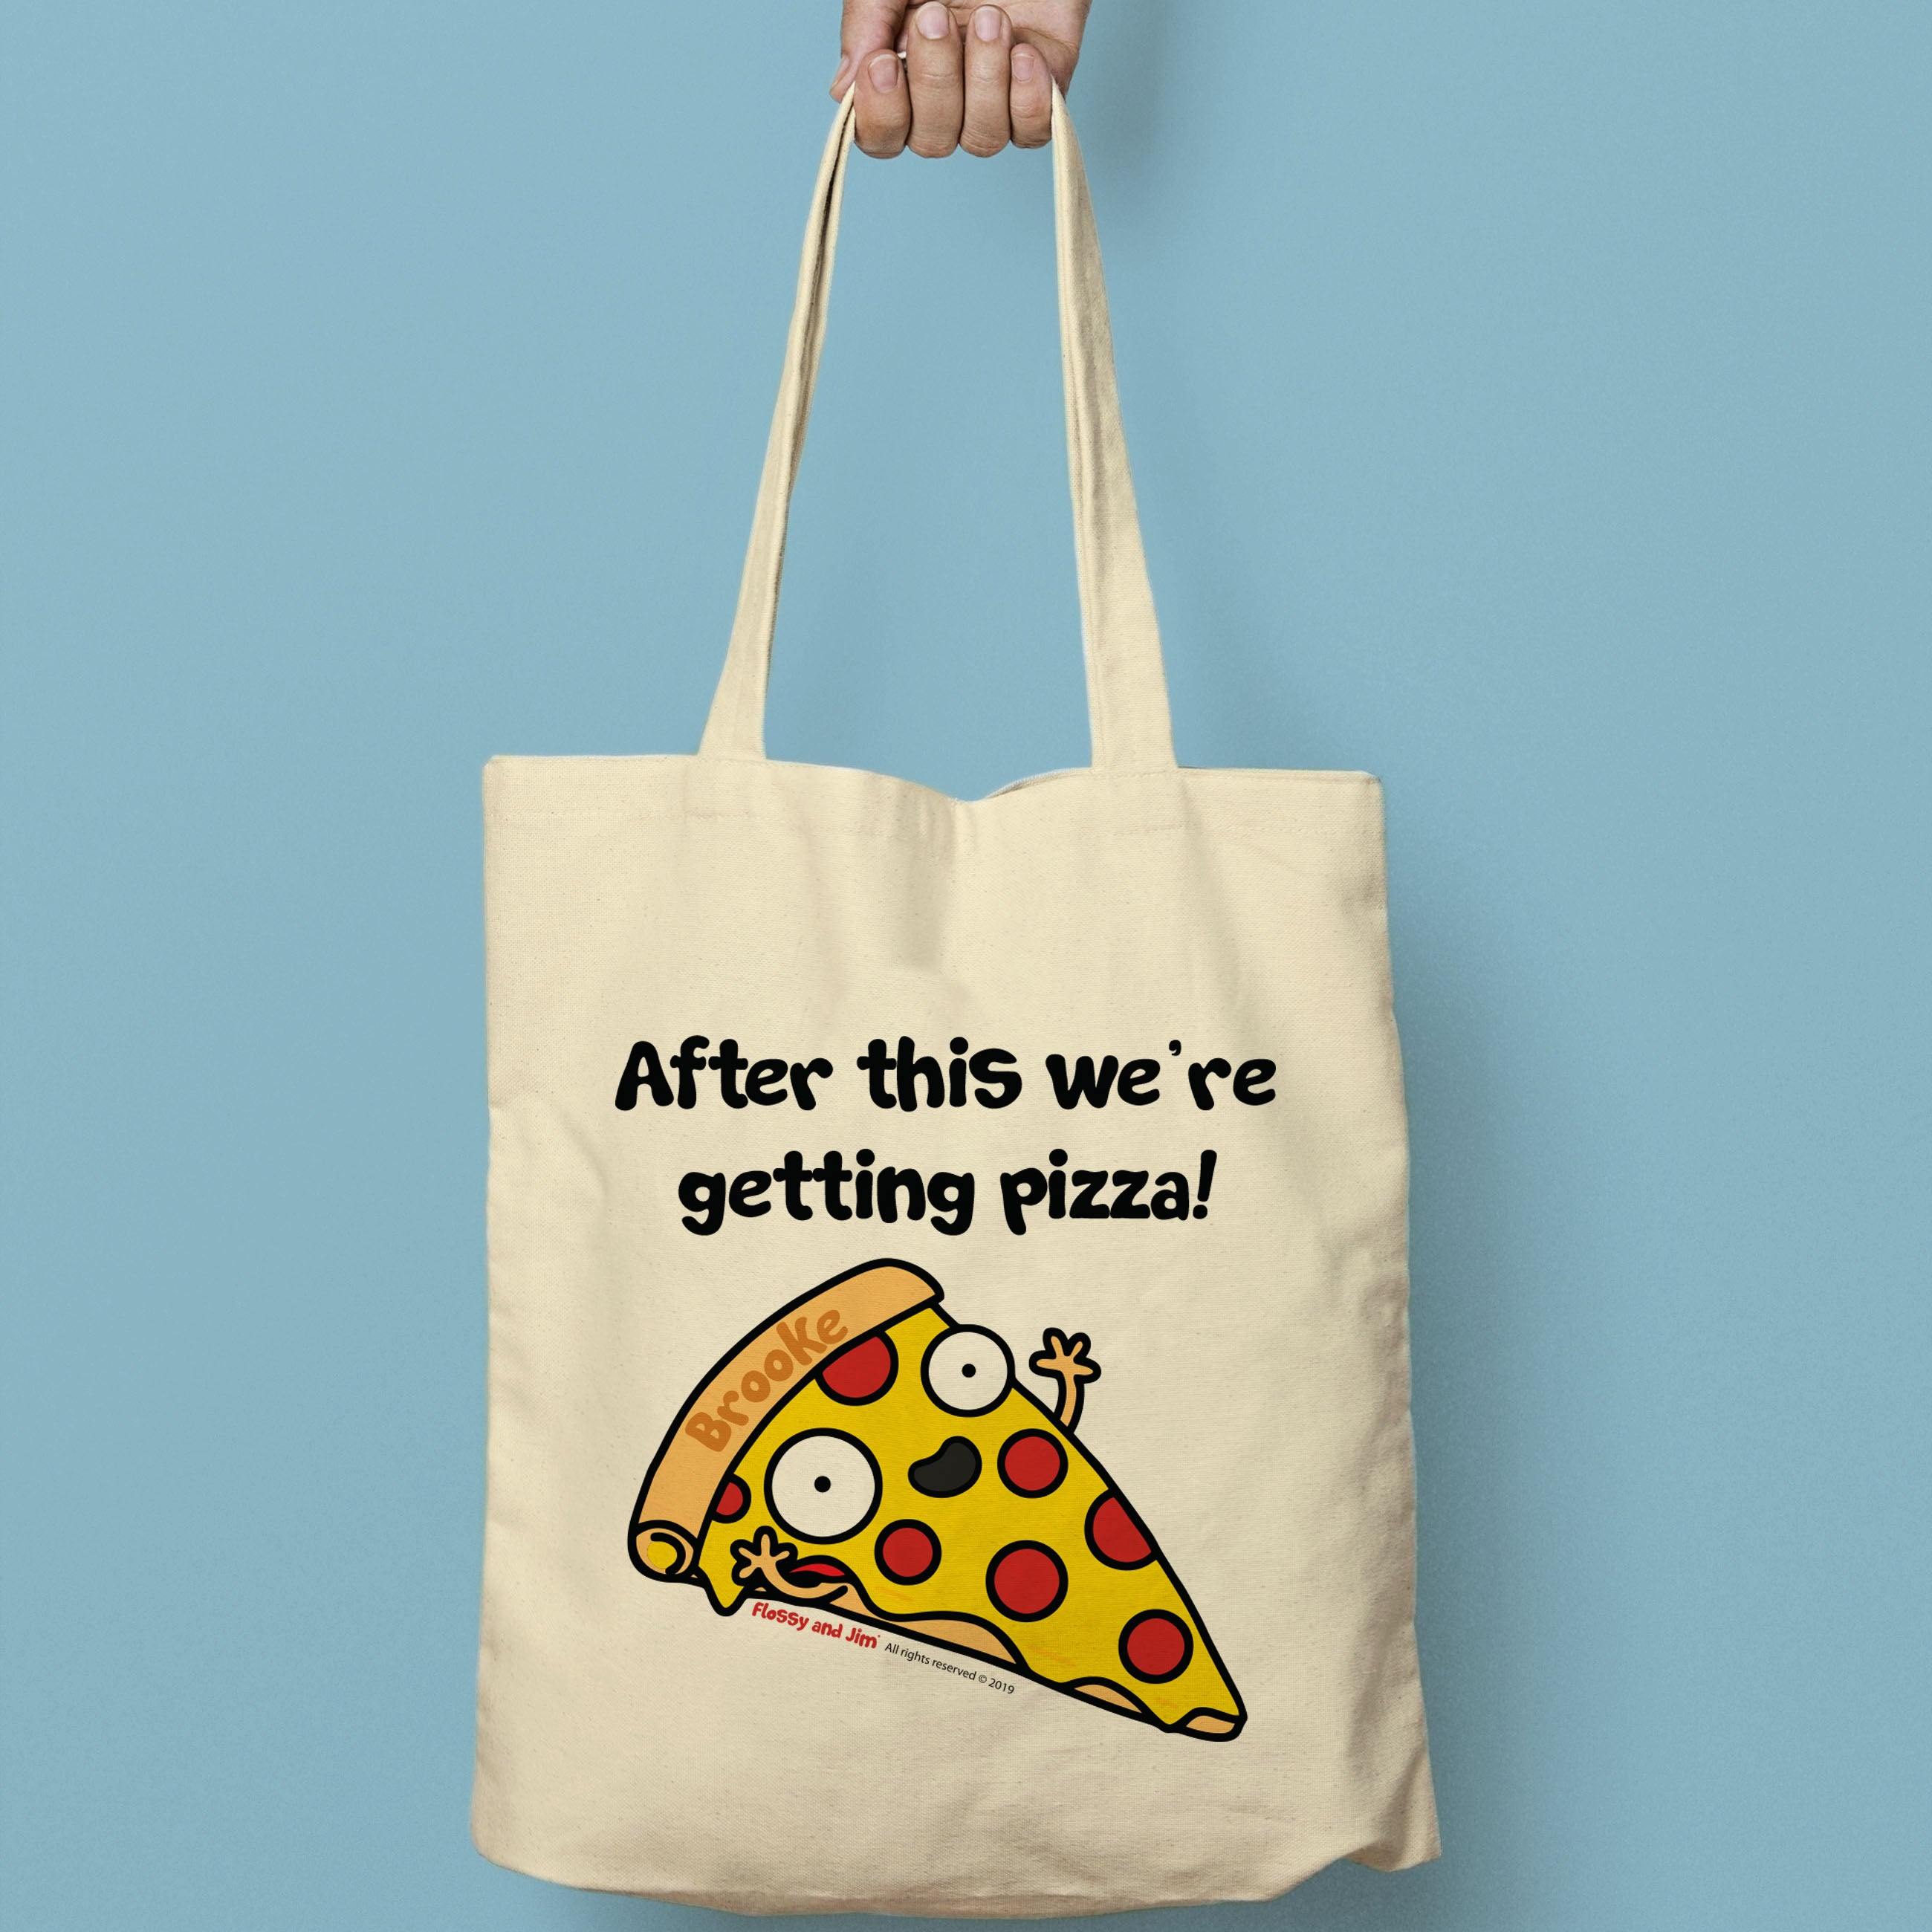 Pizza Tote Bag, Luggage & Bags by Gifts24-7